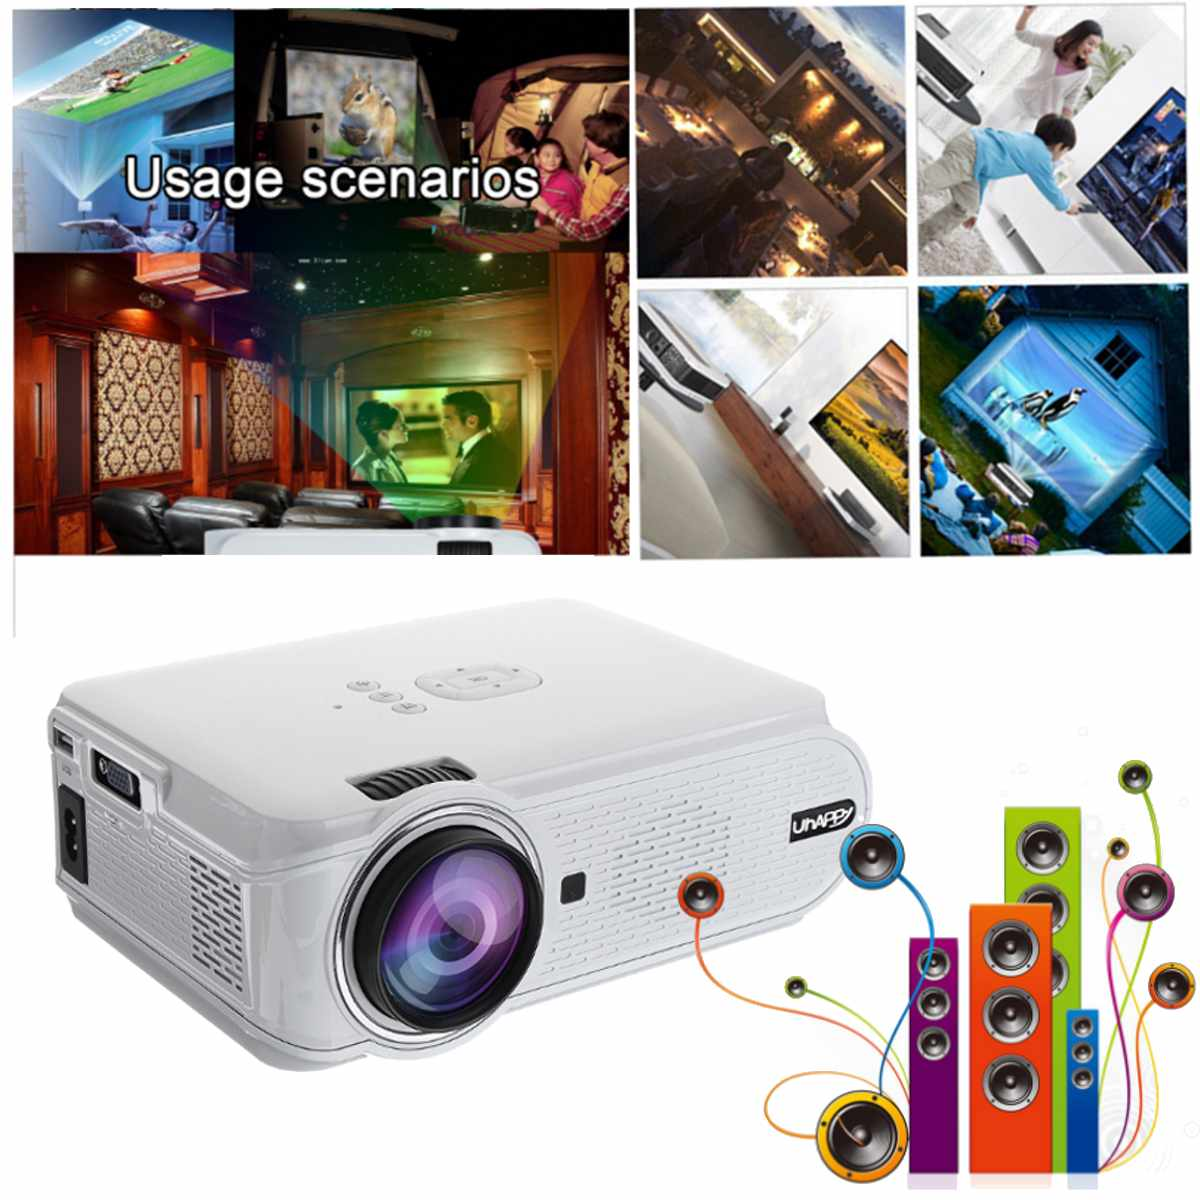 Tragbare HD 1080P Video Beamer LED Mini Projektoren 7000LM Heimkino Video Strahl 4K für Home Cinema Video spiele Smartphones